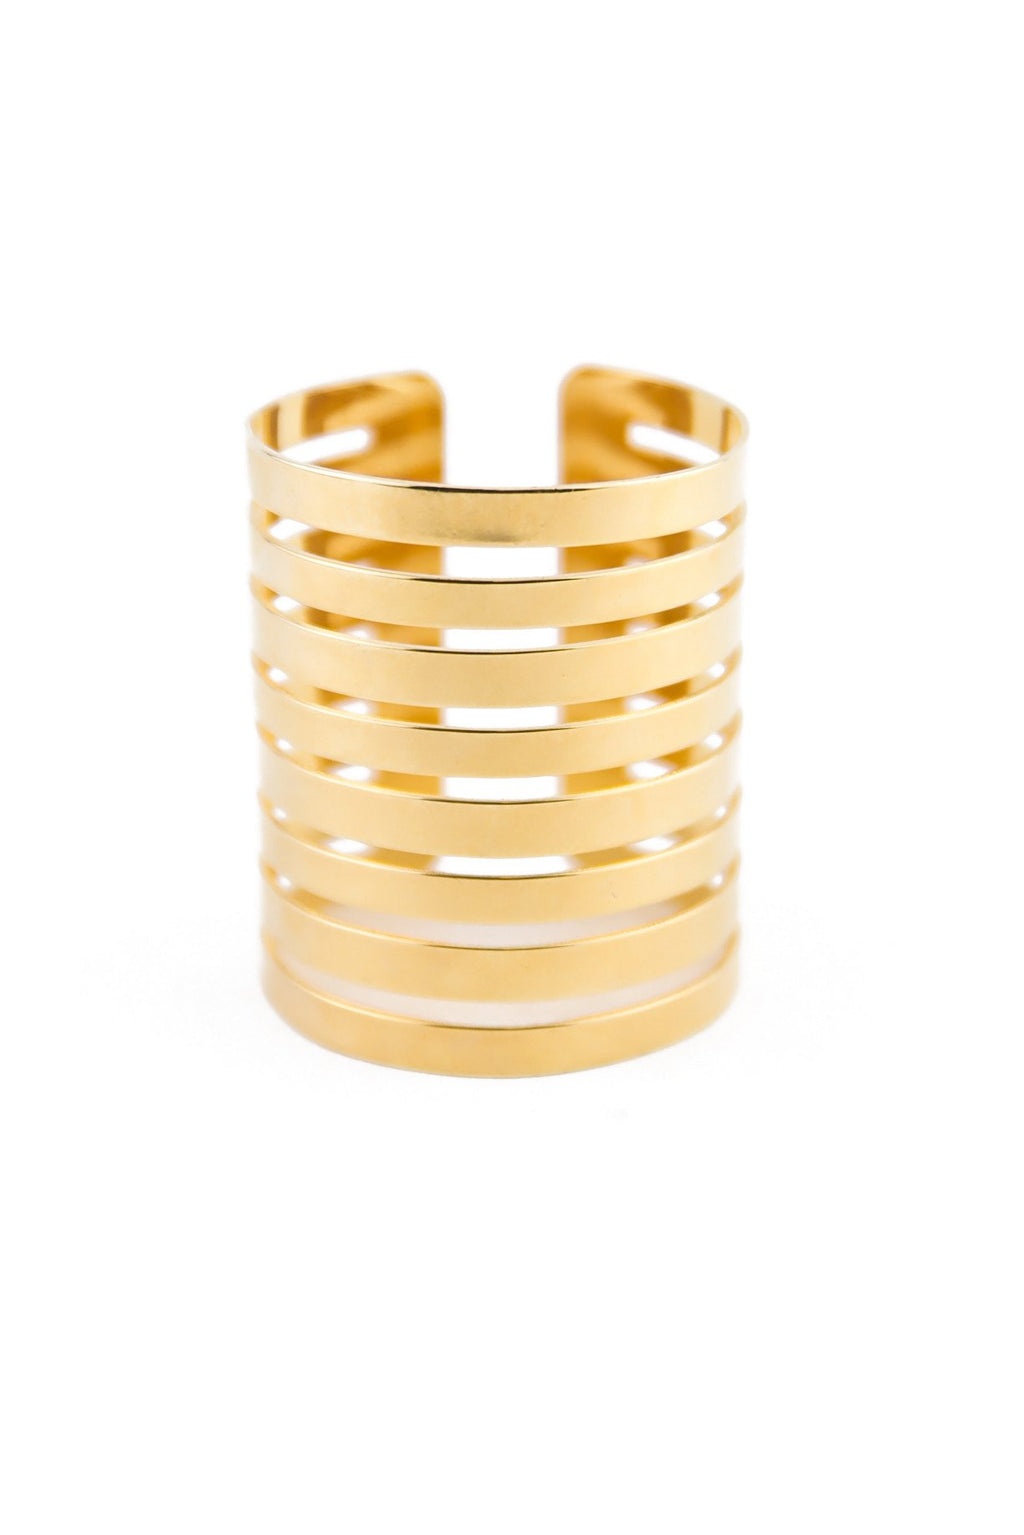 LADDER CUTOUT CUFF BANGLE - Haute & Rebellious